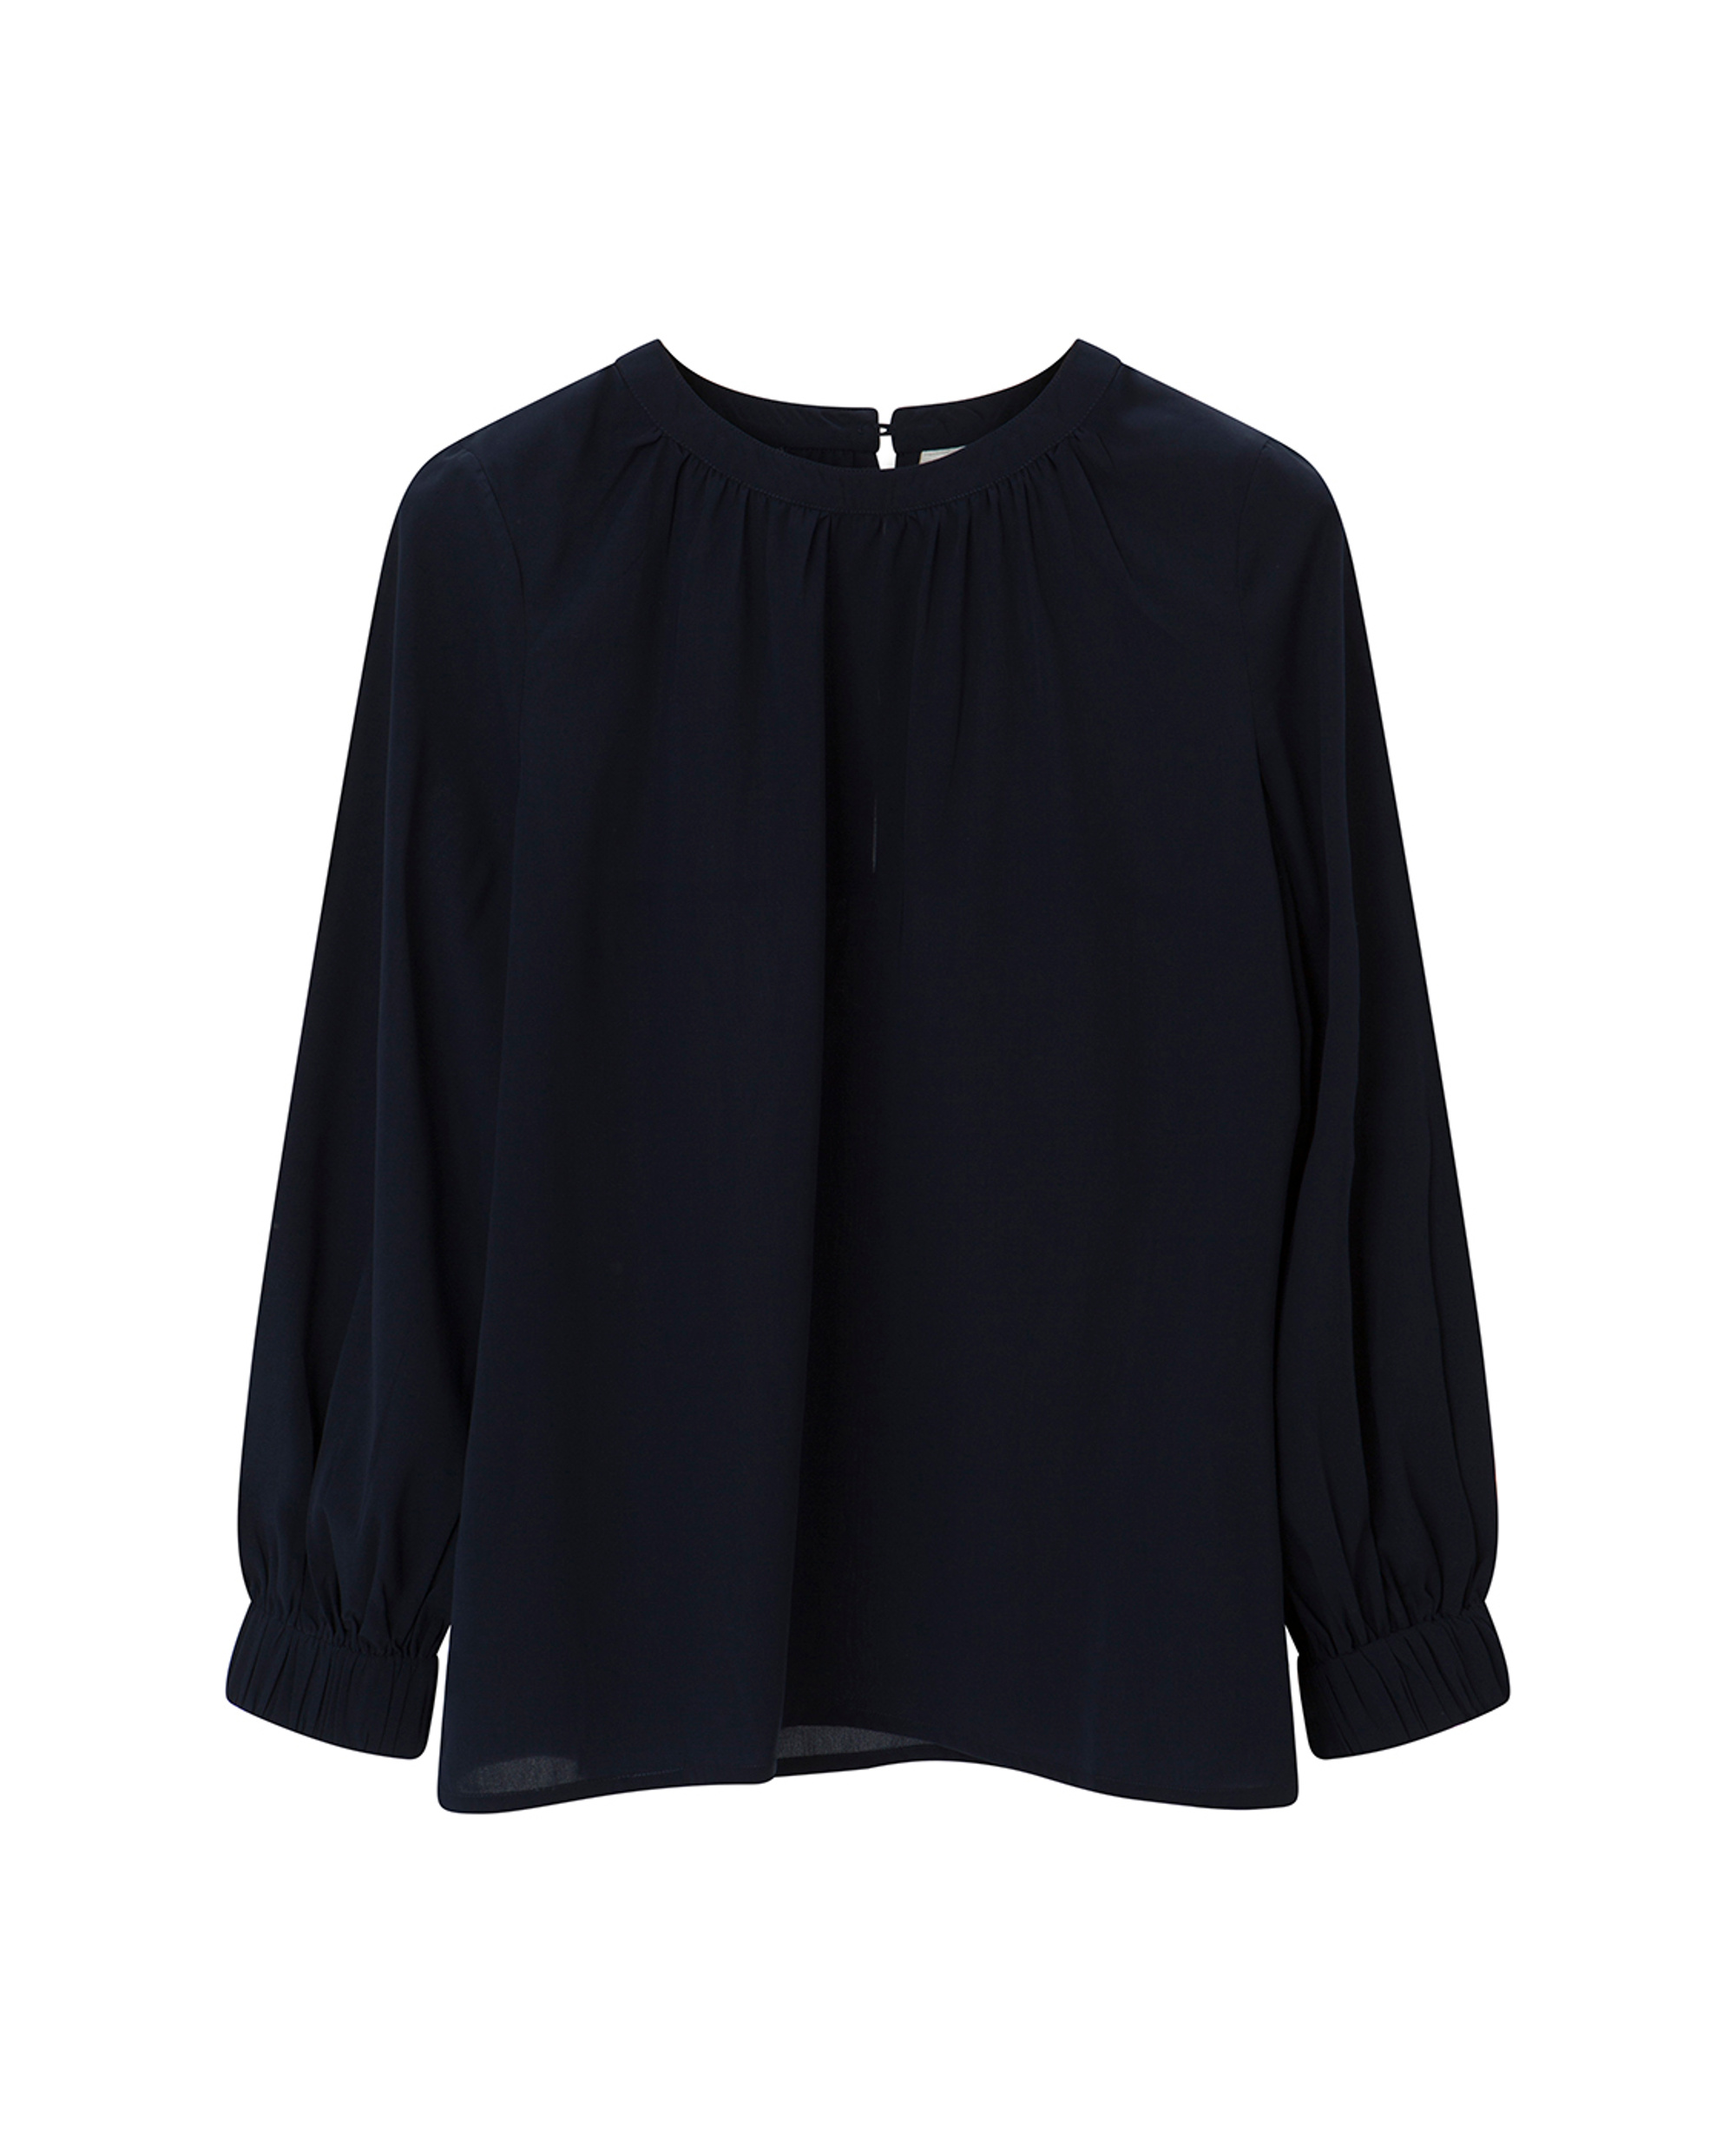 Mercer Blouse, Navy Blue